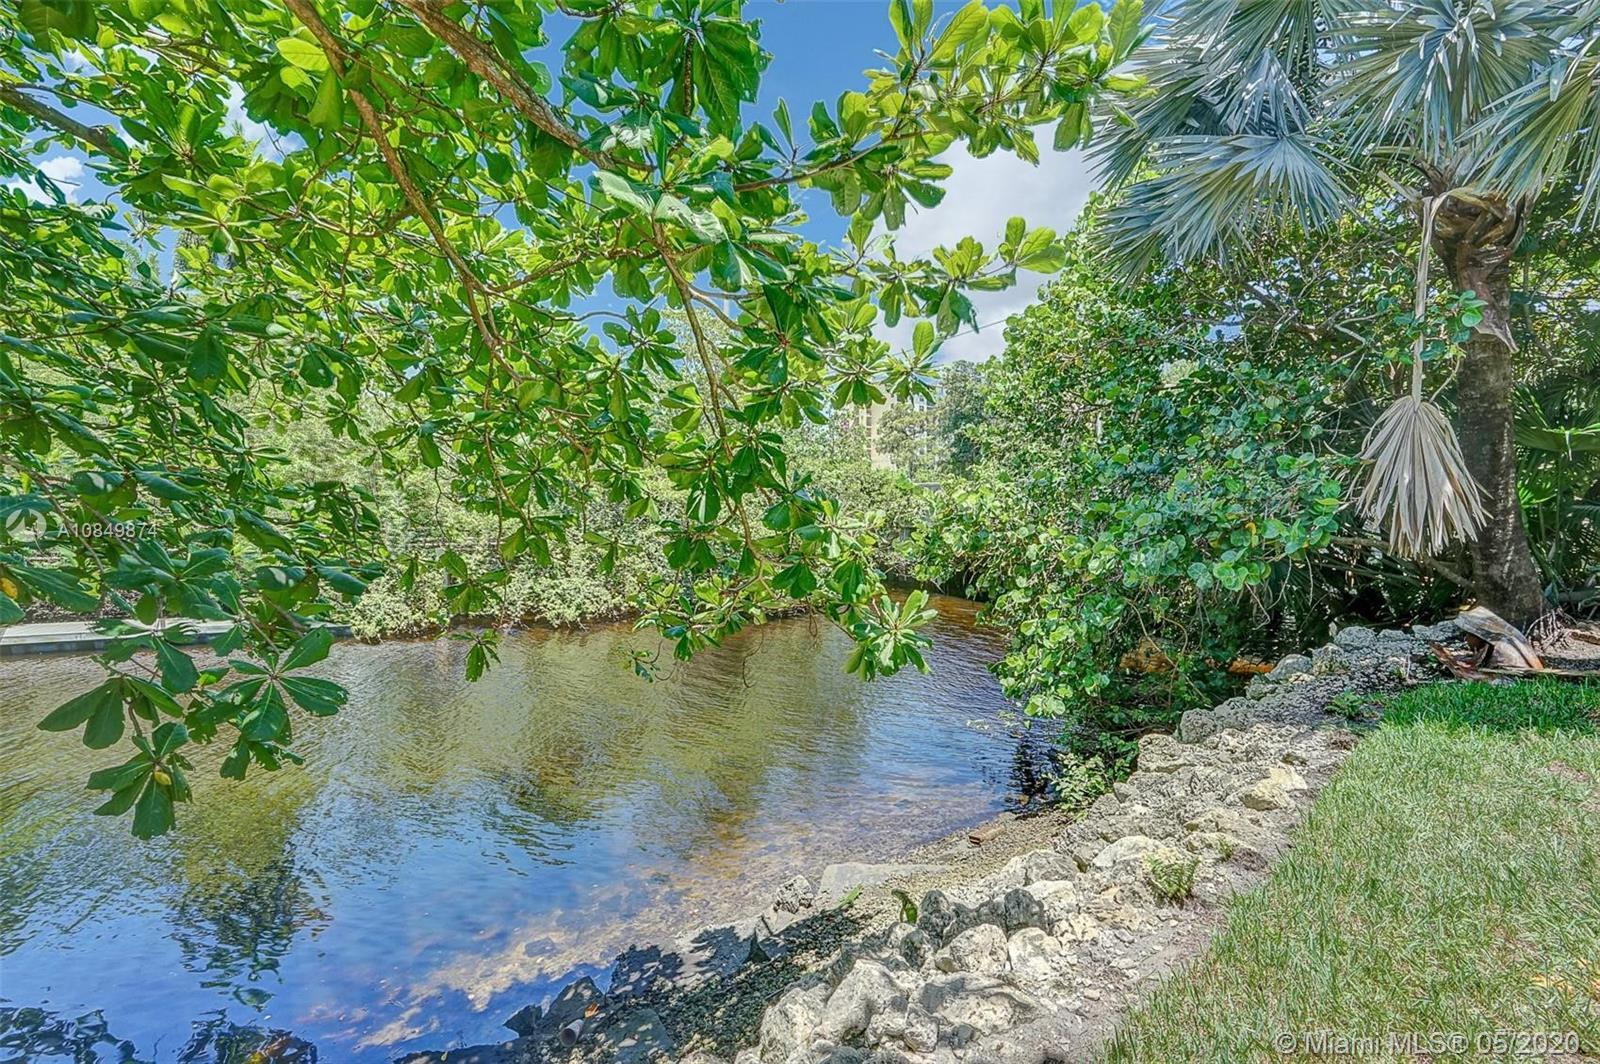 BUY WITH AS LITTLE AS 3% DOWN. COMMUNITY HAS TONS OF RESERVES! VERY WELL RUN! Gorgeous Waterfront Co